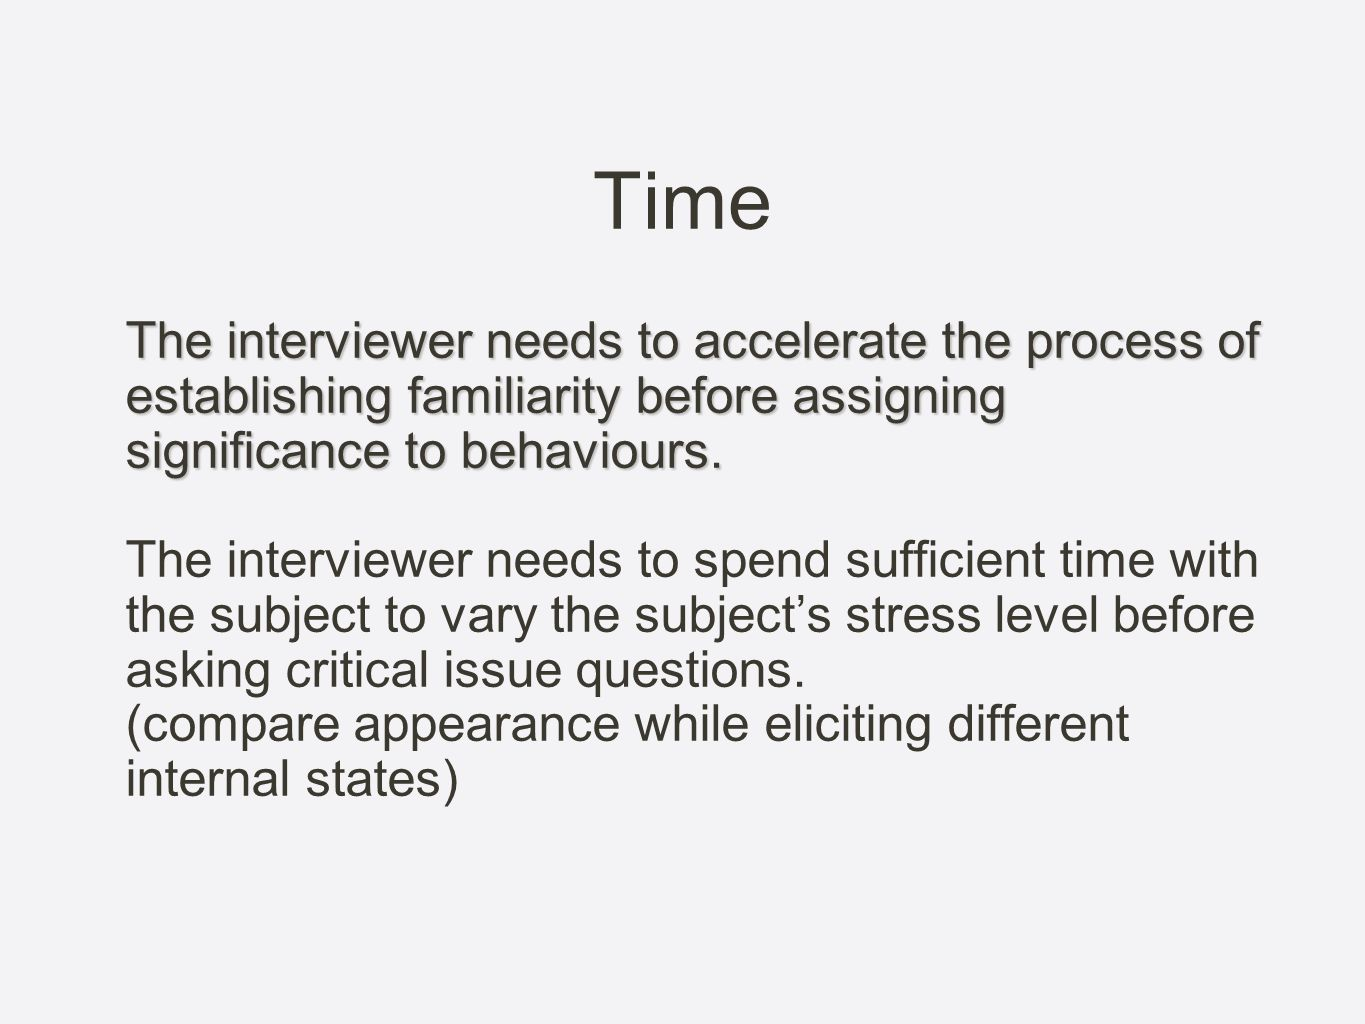 TimeThe interviewer needs to accelerate the process of establishing familiarity before assigning significance to behaviours.